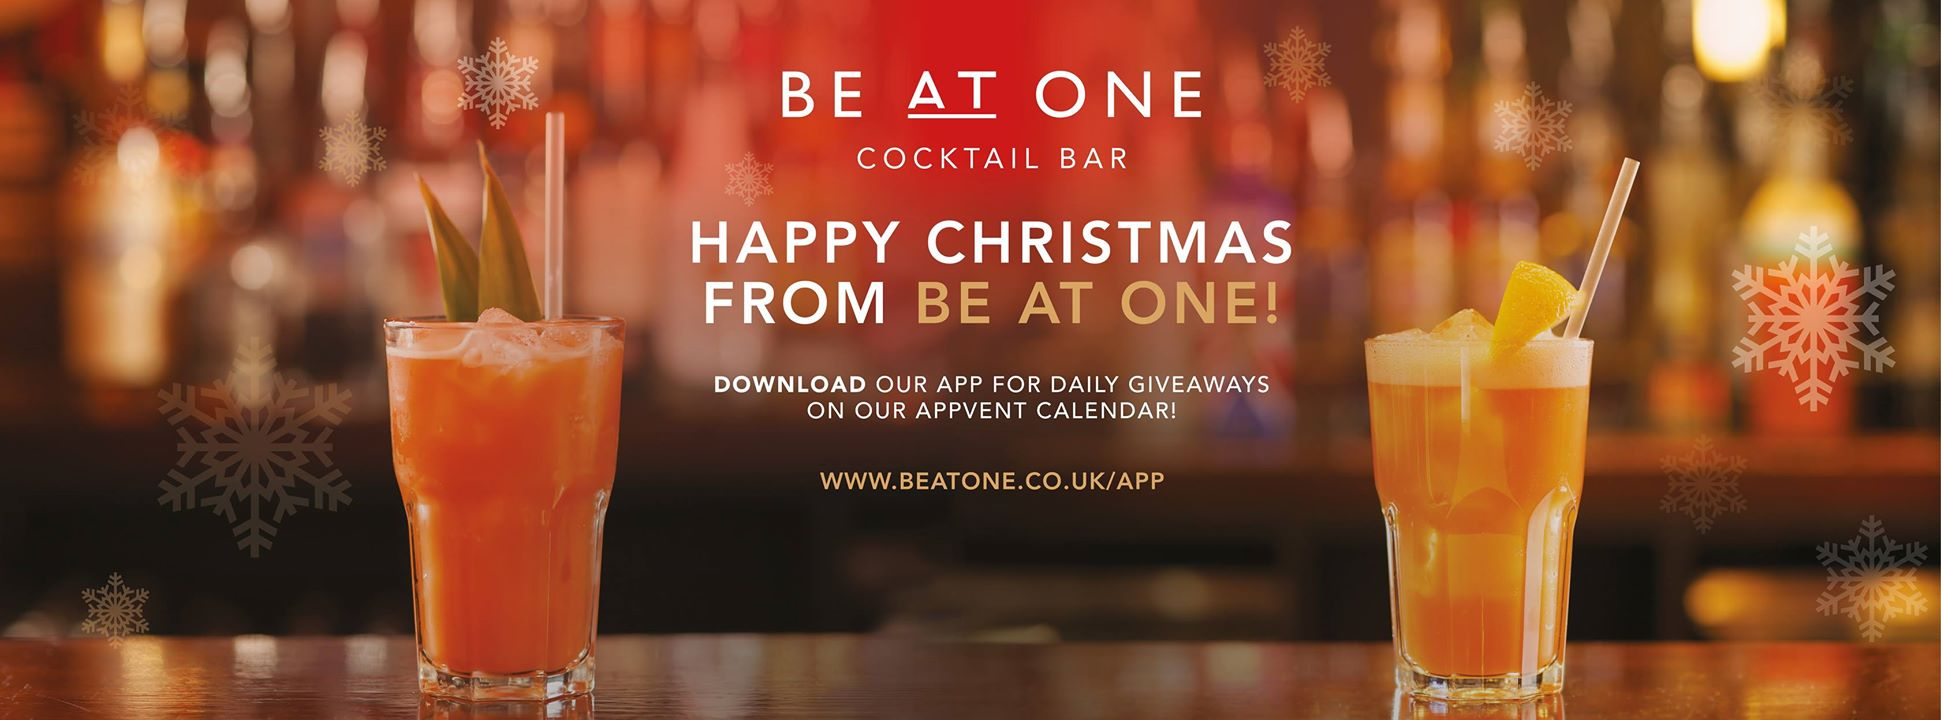 Be At One Cocktail Bar Profile Image  - Bars - On XploreUK